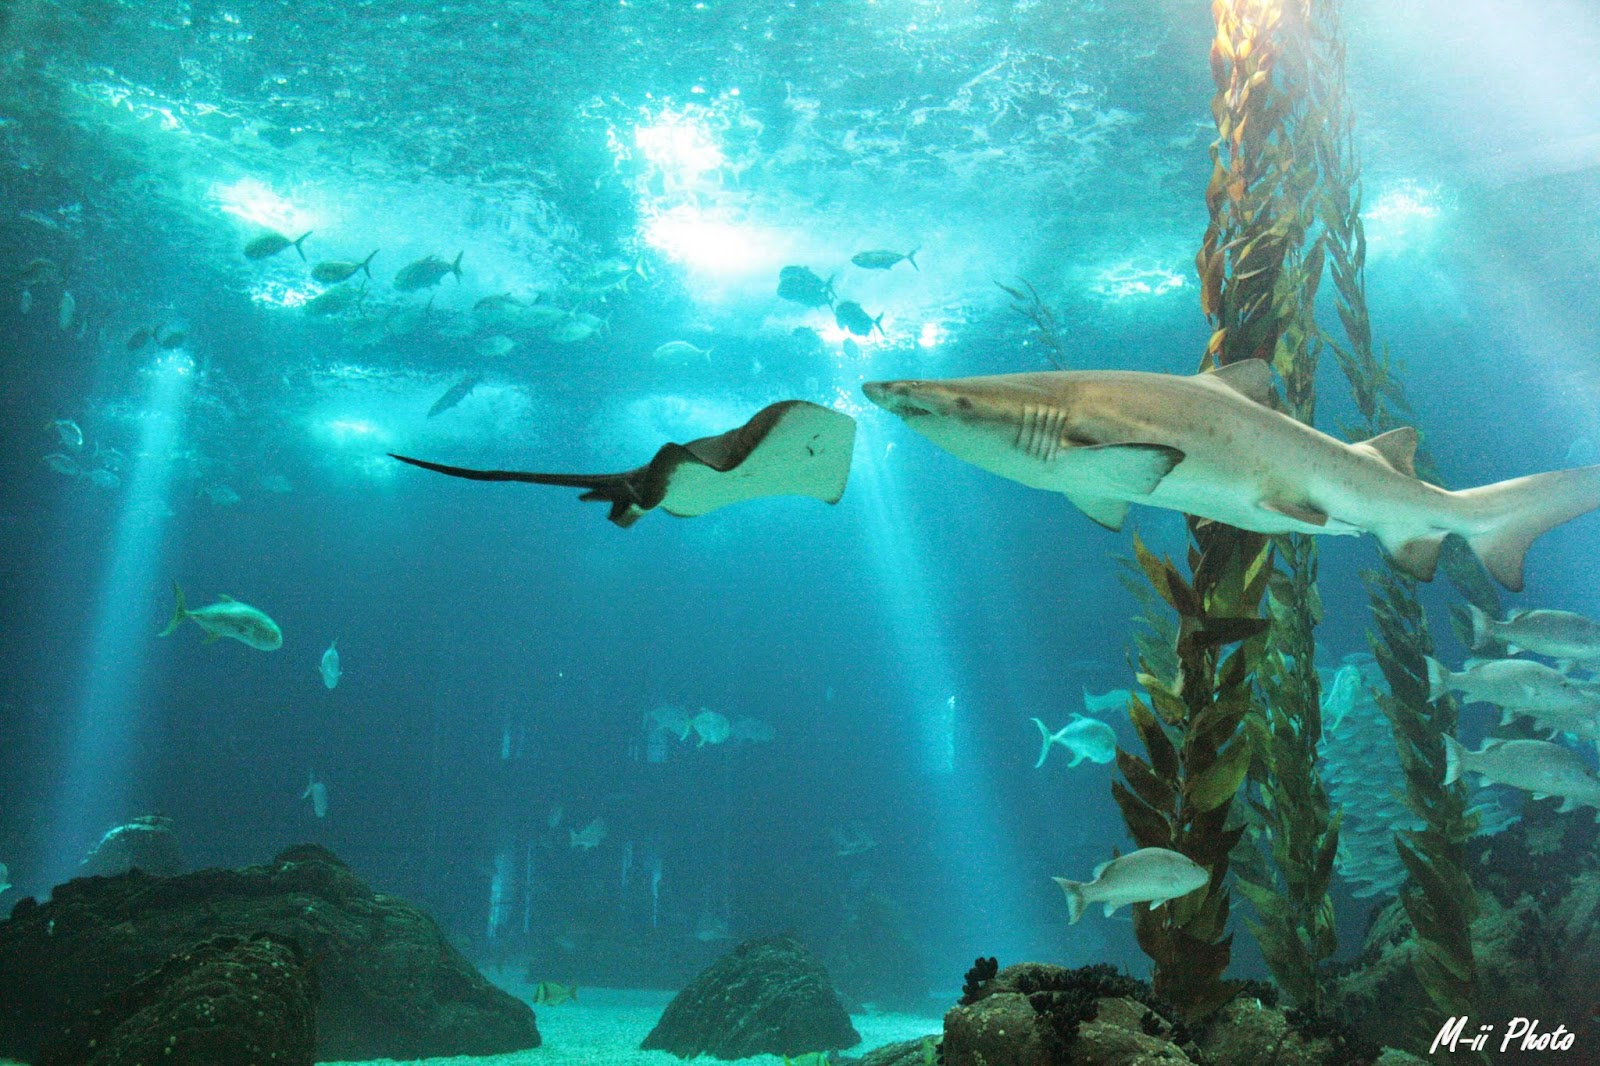 M-ii Photo : 10 choses à faire à Lisbonne Aquarium de Lisbonne